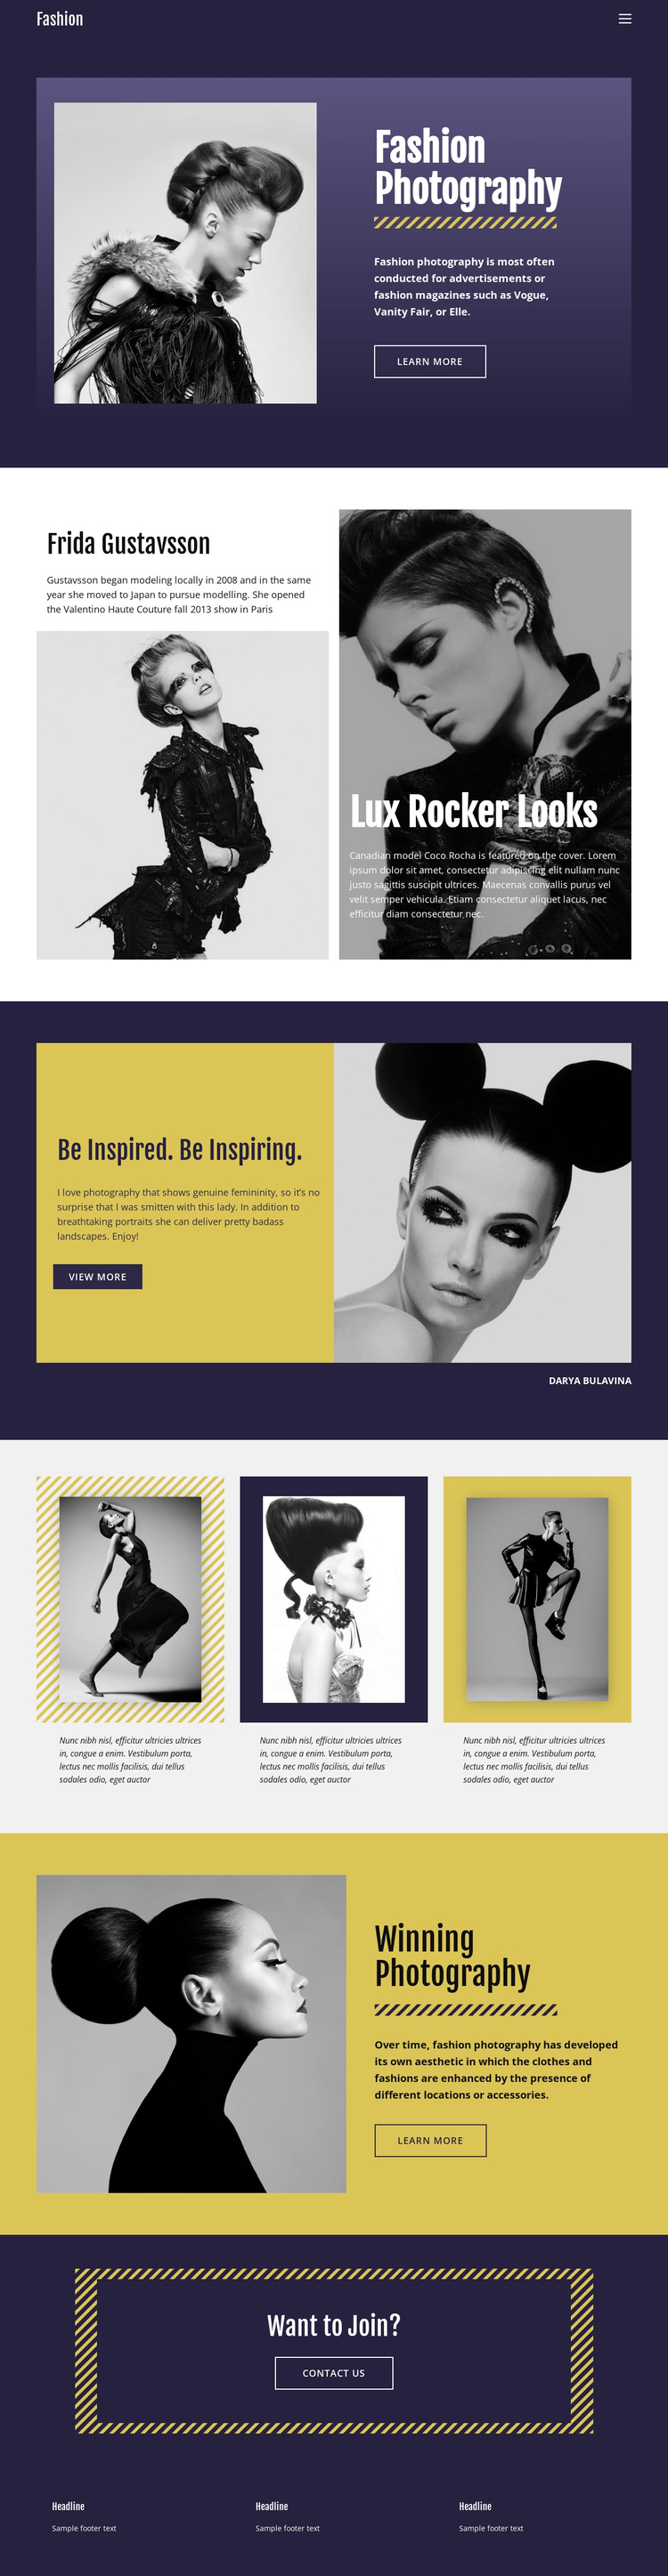 Fashion Photography Classic Style Website Builder Software